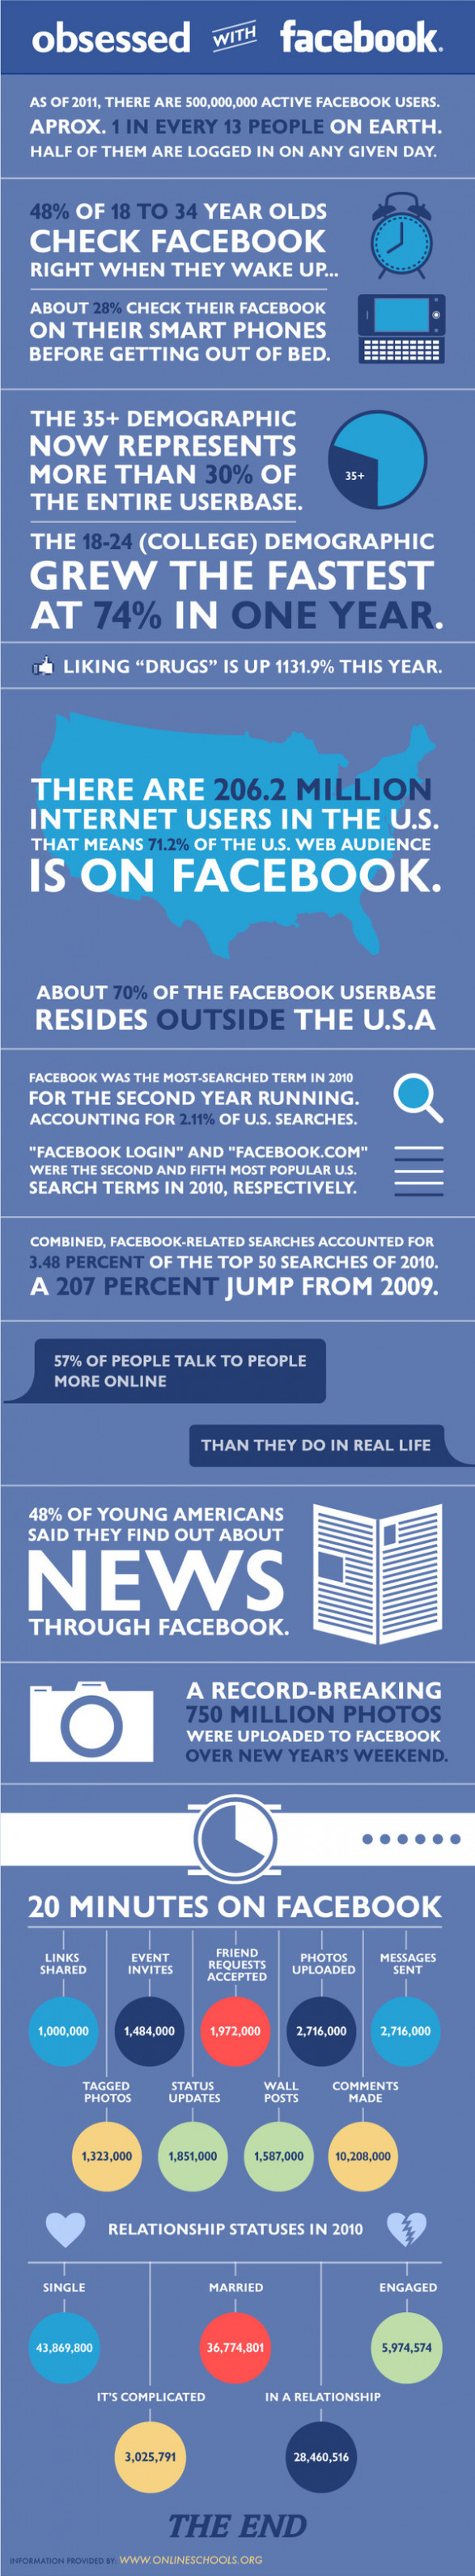 Facebook Addiction: Are We Obsessed?